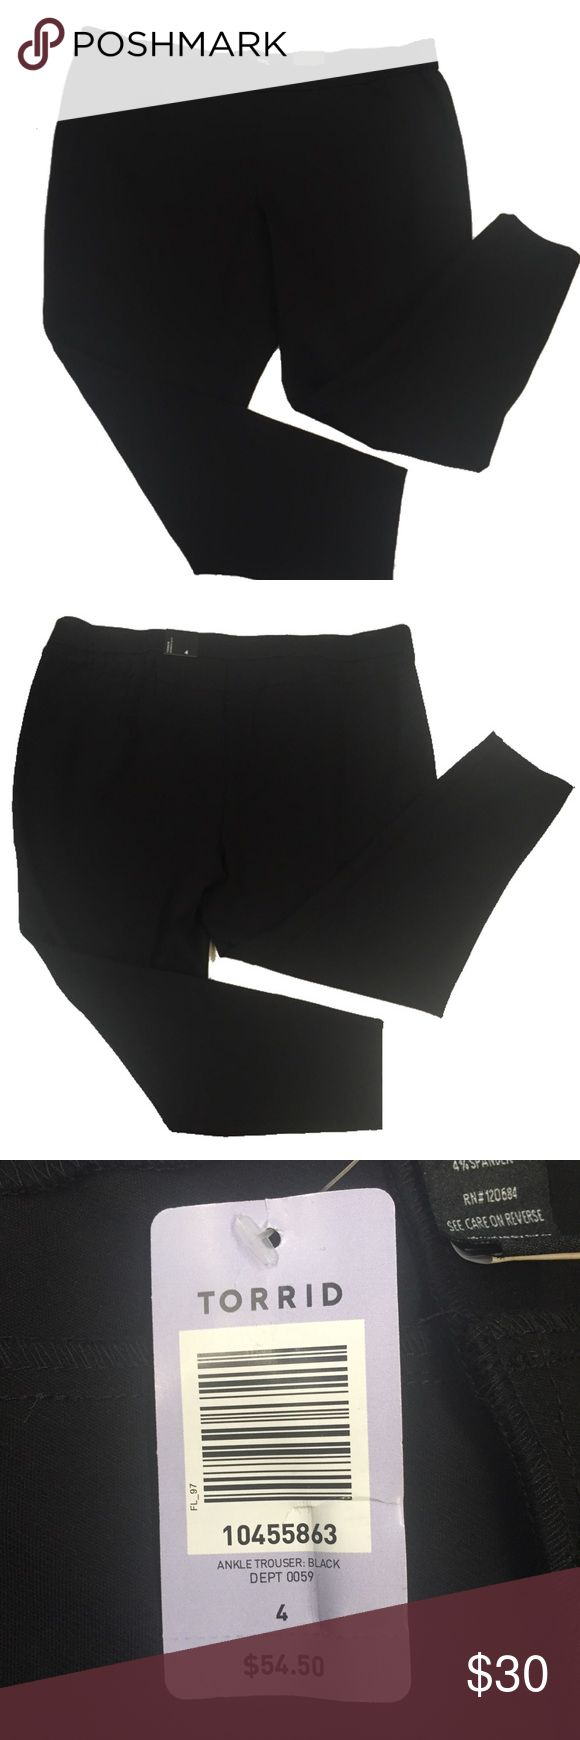 Torrid Dressy Ankle Pants This is a great pair of black ankle pants from torrid! New with tags, never worn. Undamaged. Smoke and pet free home. torrid Pants Ankle & Cropped